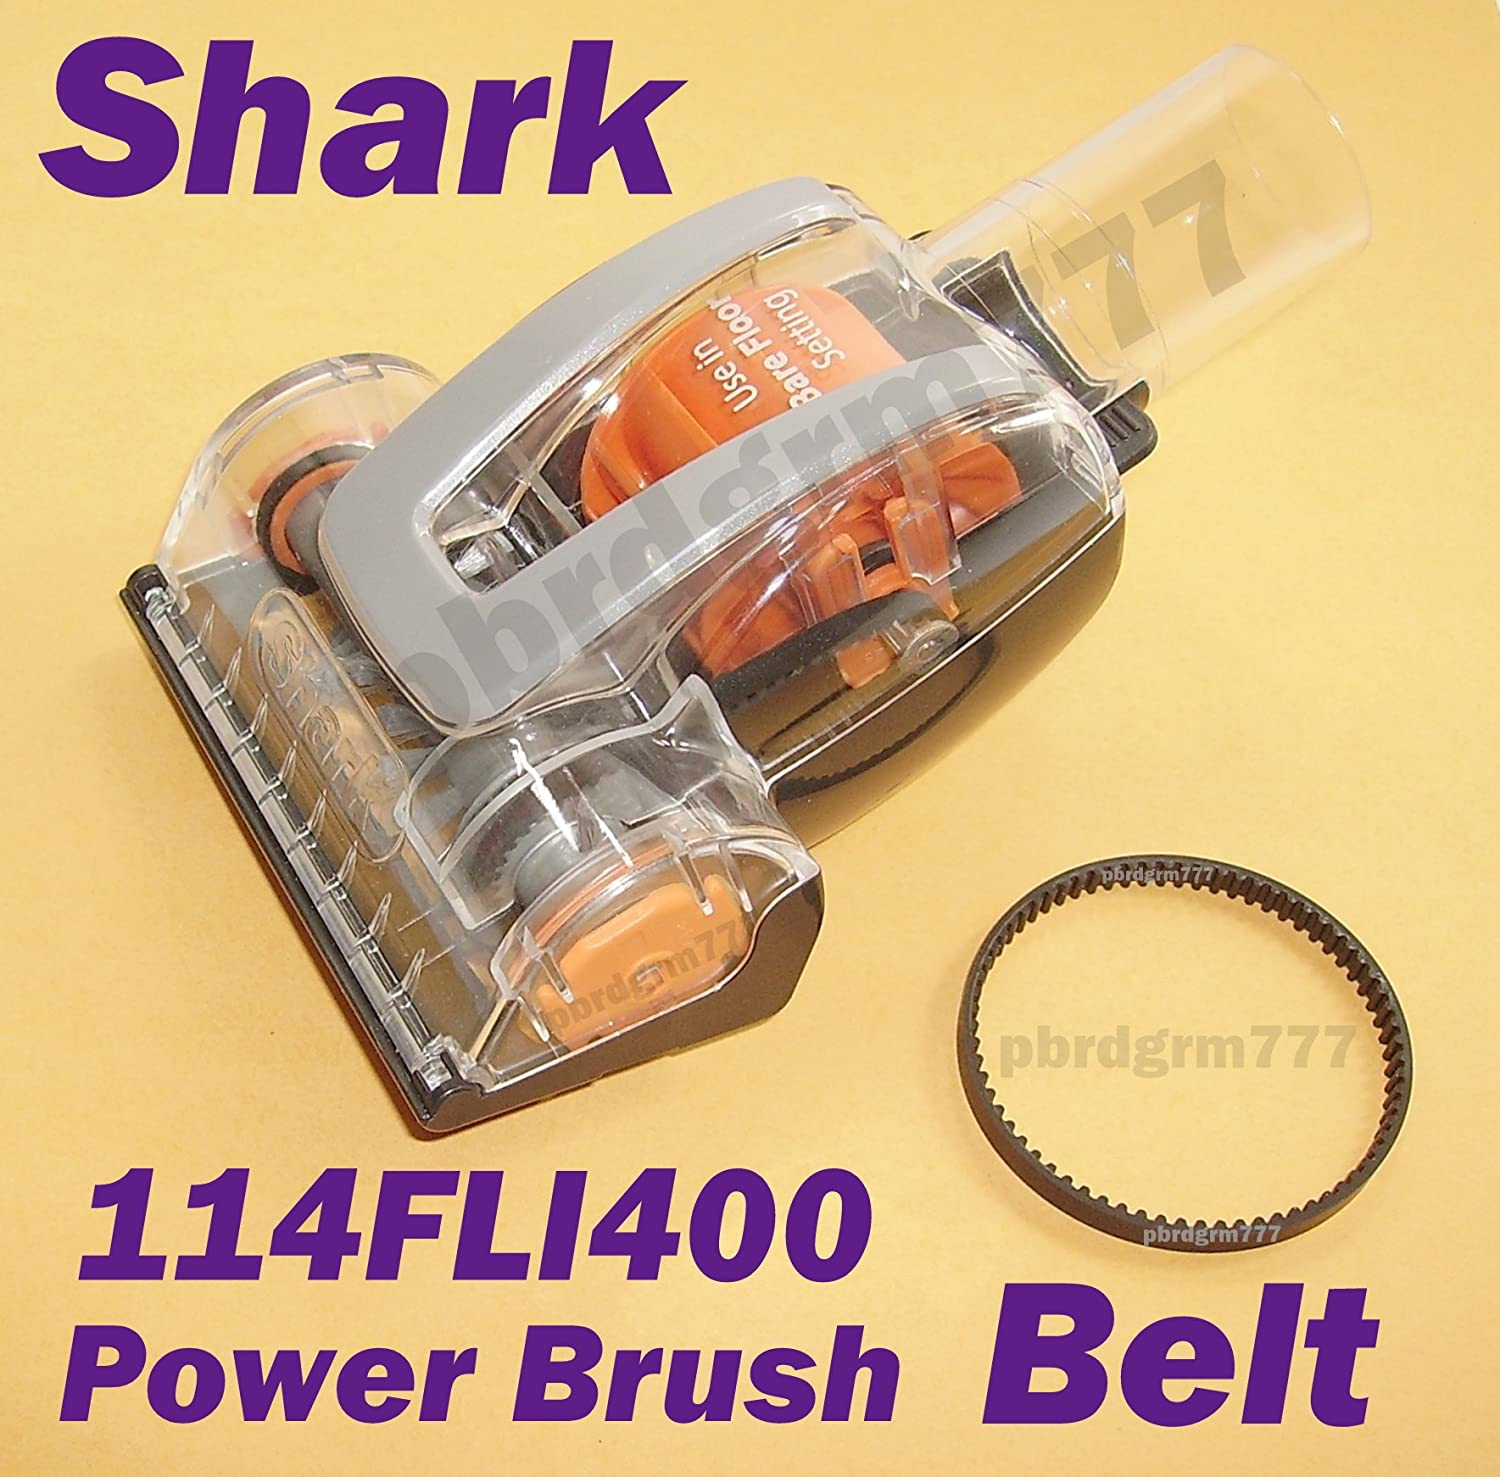 Shark 114FLI400 Belt for the Hand Held Small Power Brush that comes with the Shark NR96 Rotator Vacuum New